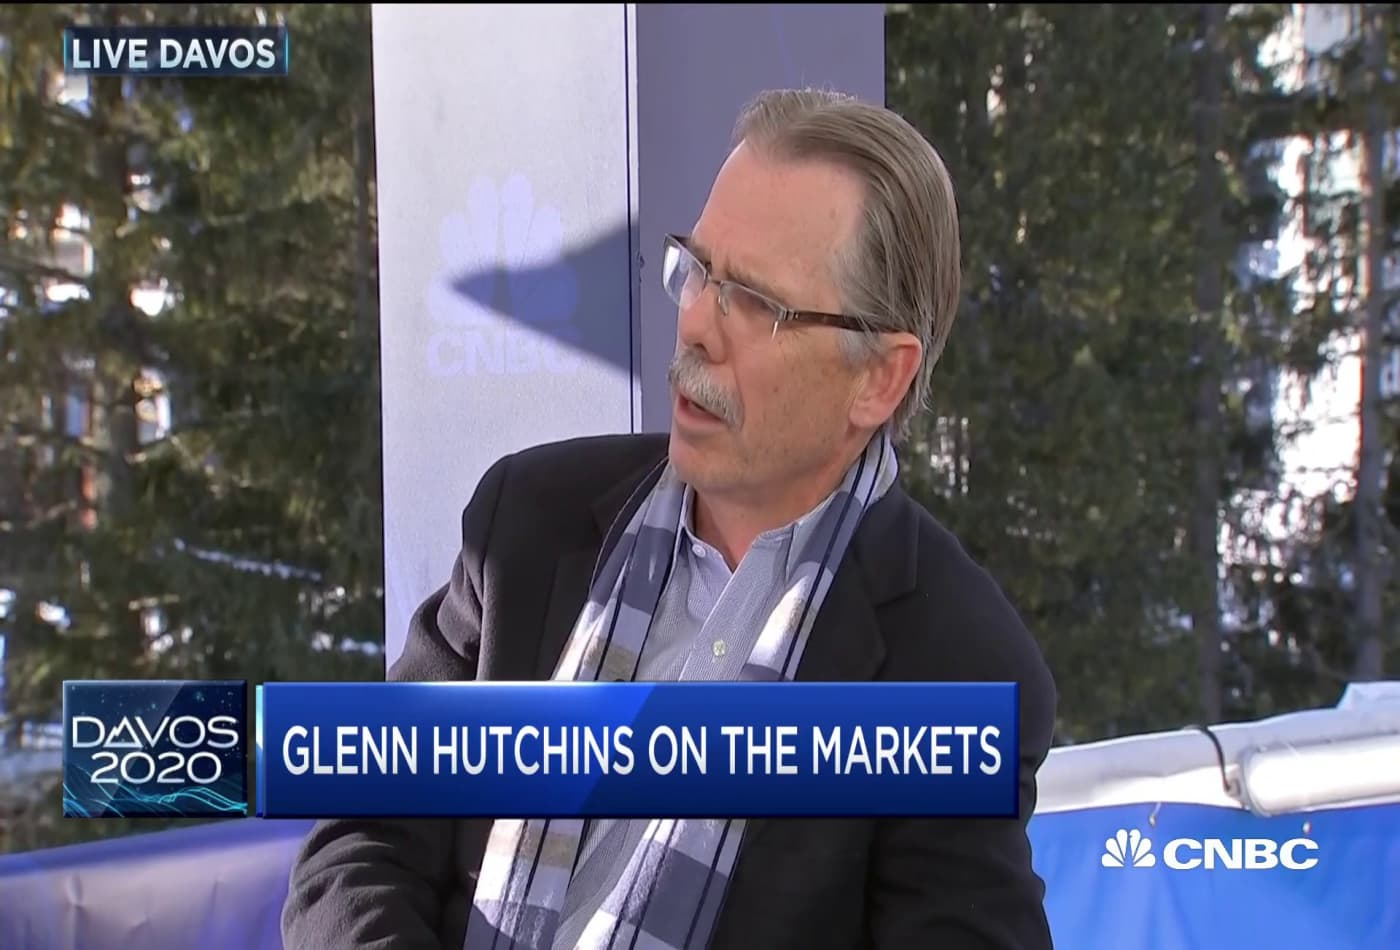 Why Glenn Hutchins has a 'great deal of concern' over the administration's fiscal policy